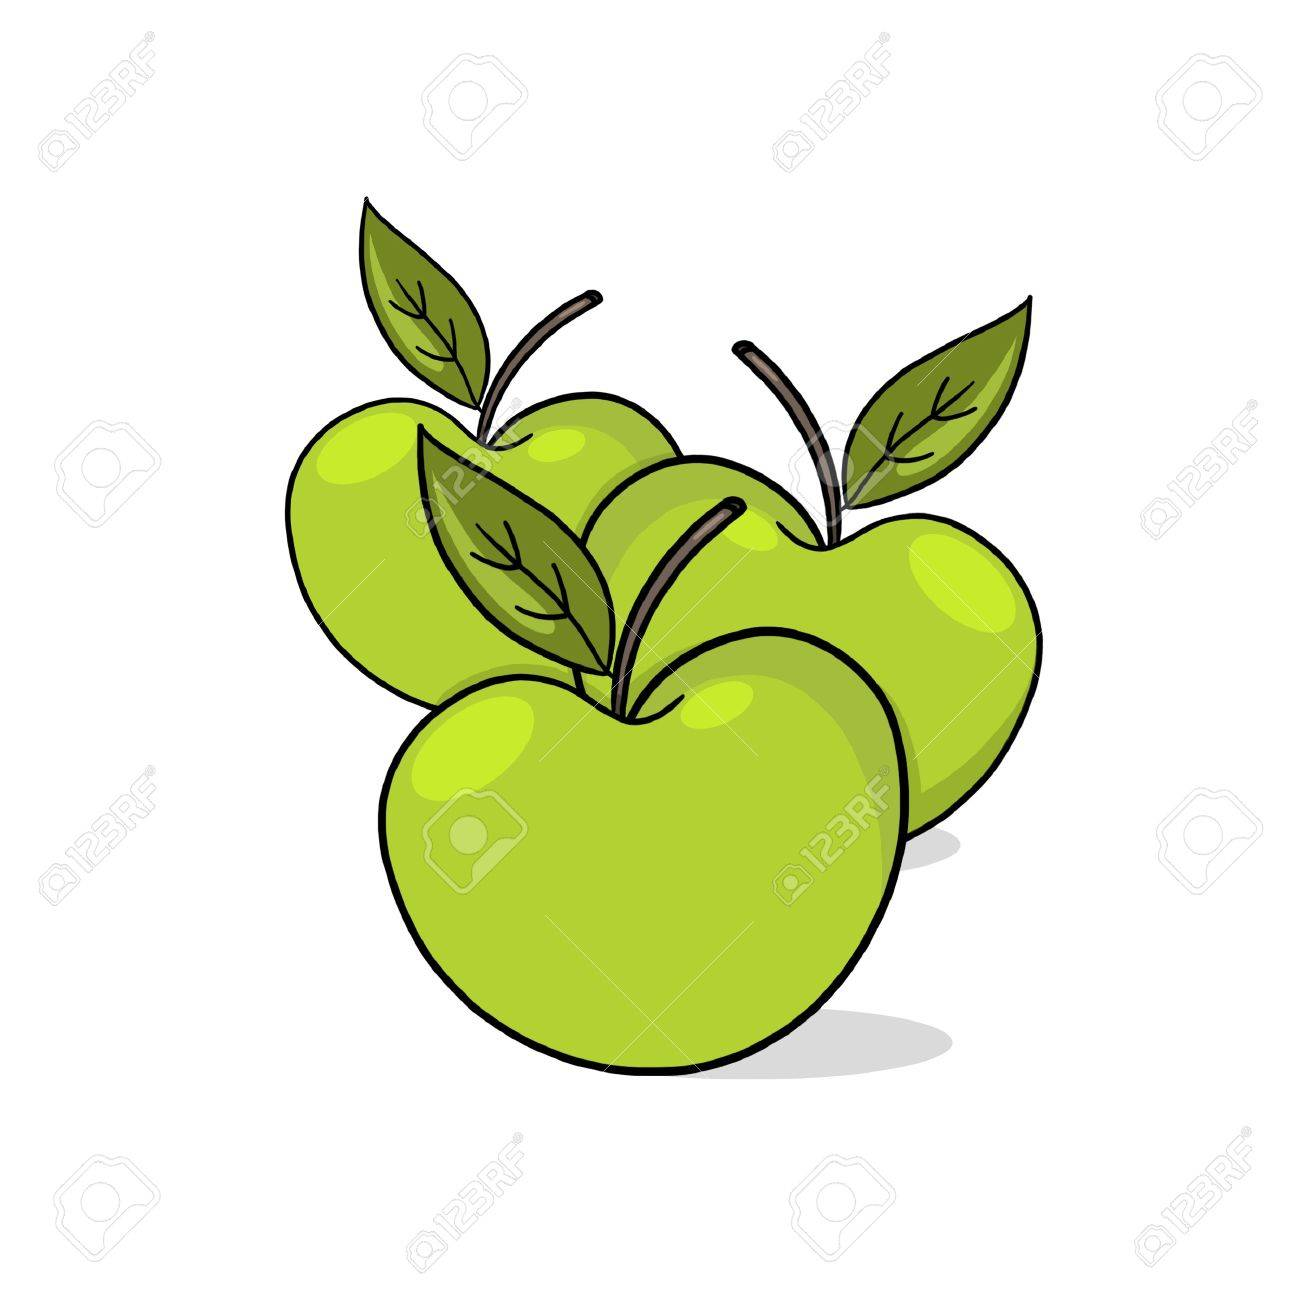 A Few green Apples; A Few Apples drawing; 3 fresh apples illustration Stock Illustration - 9640749